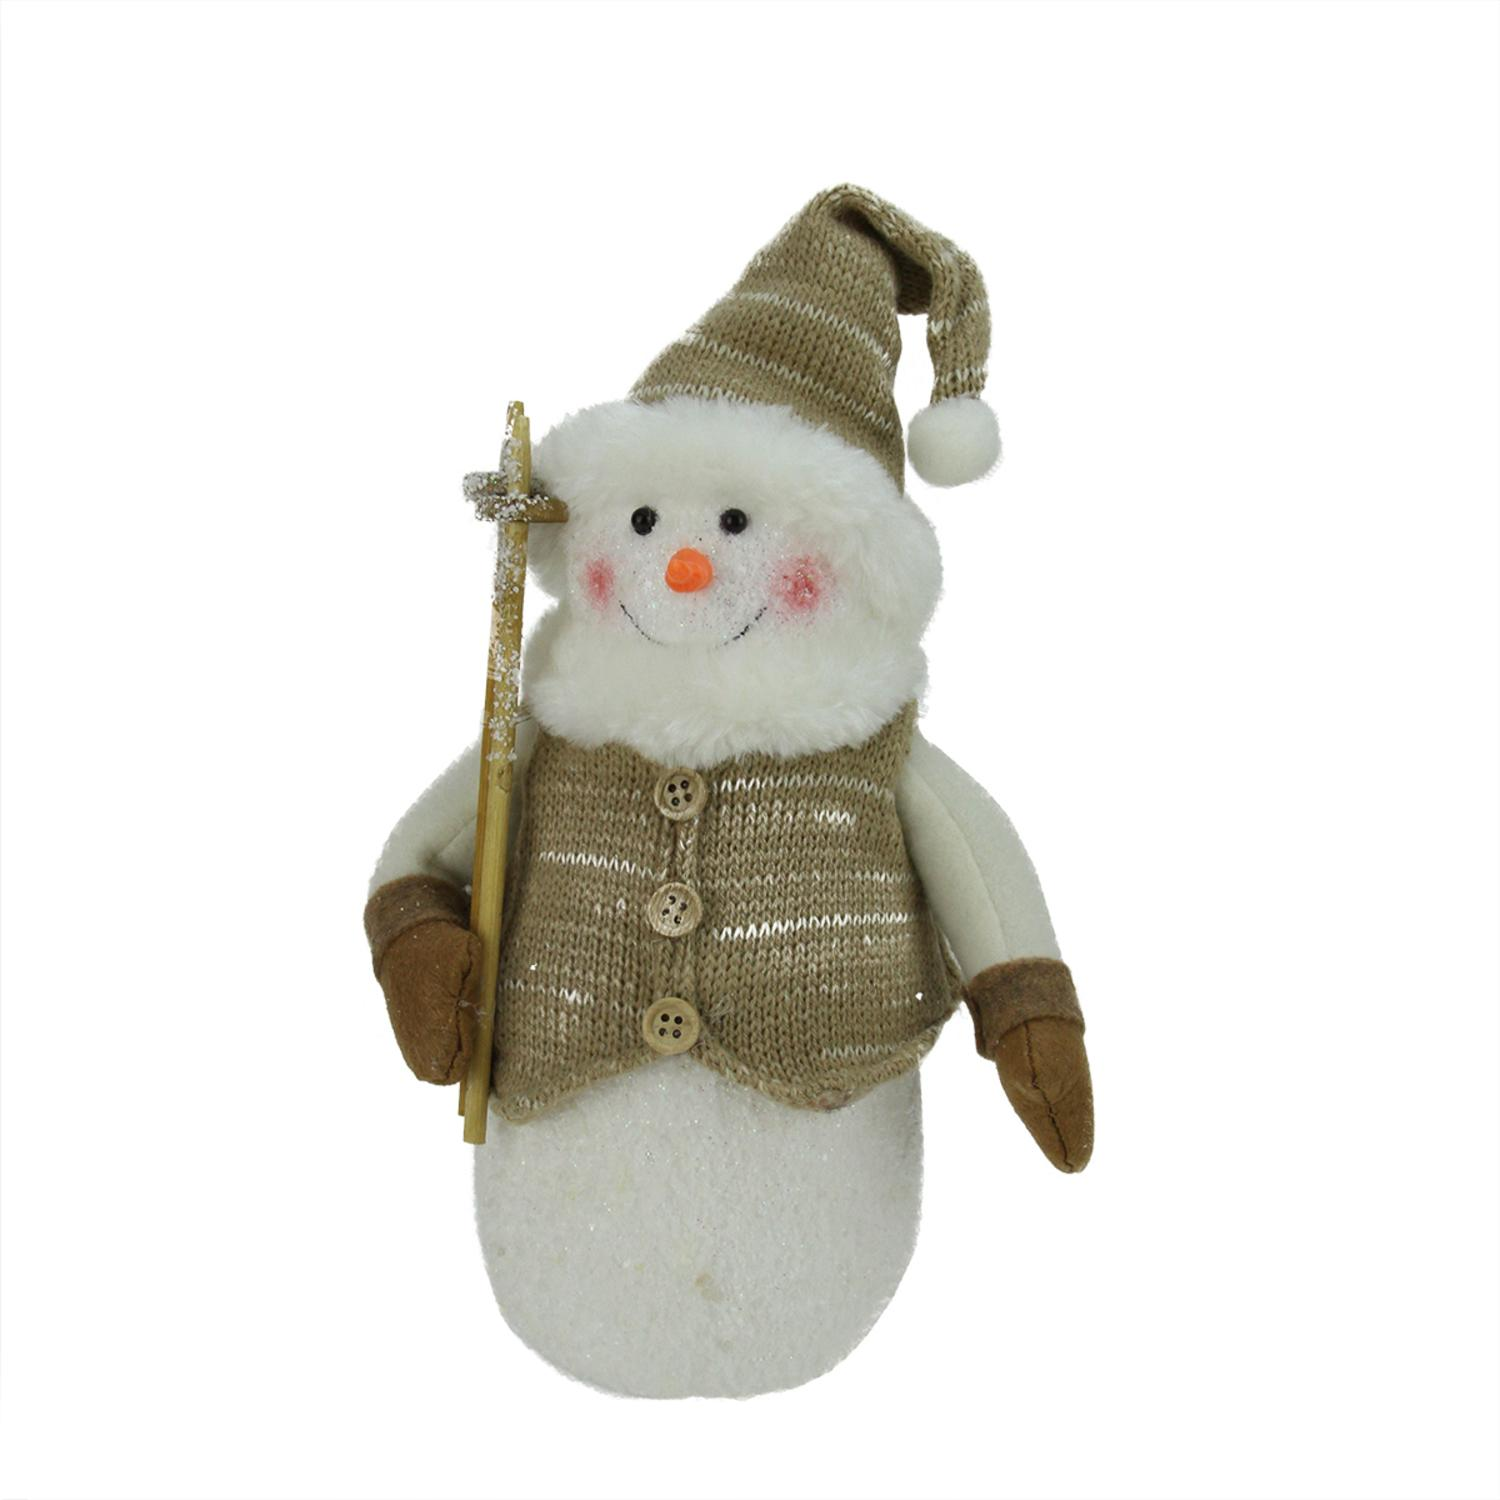 10 alpine chic brown and beige snowman with ski poles and mistletoe christmas decoration